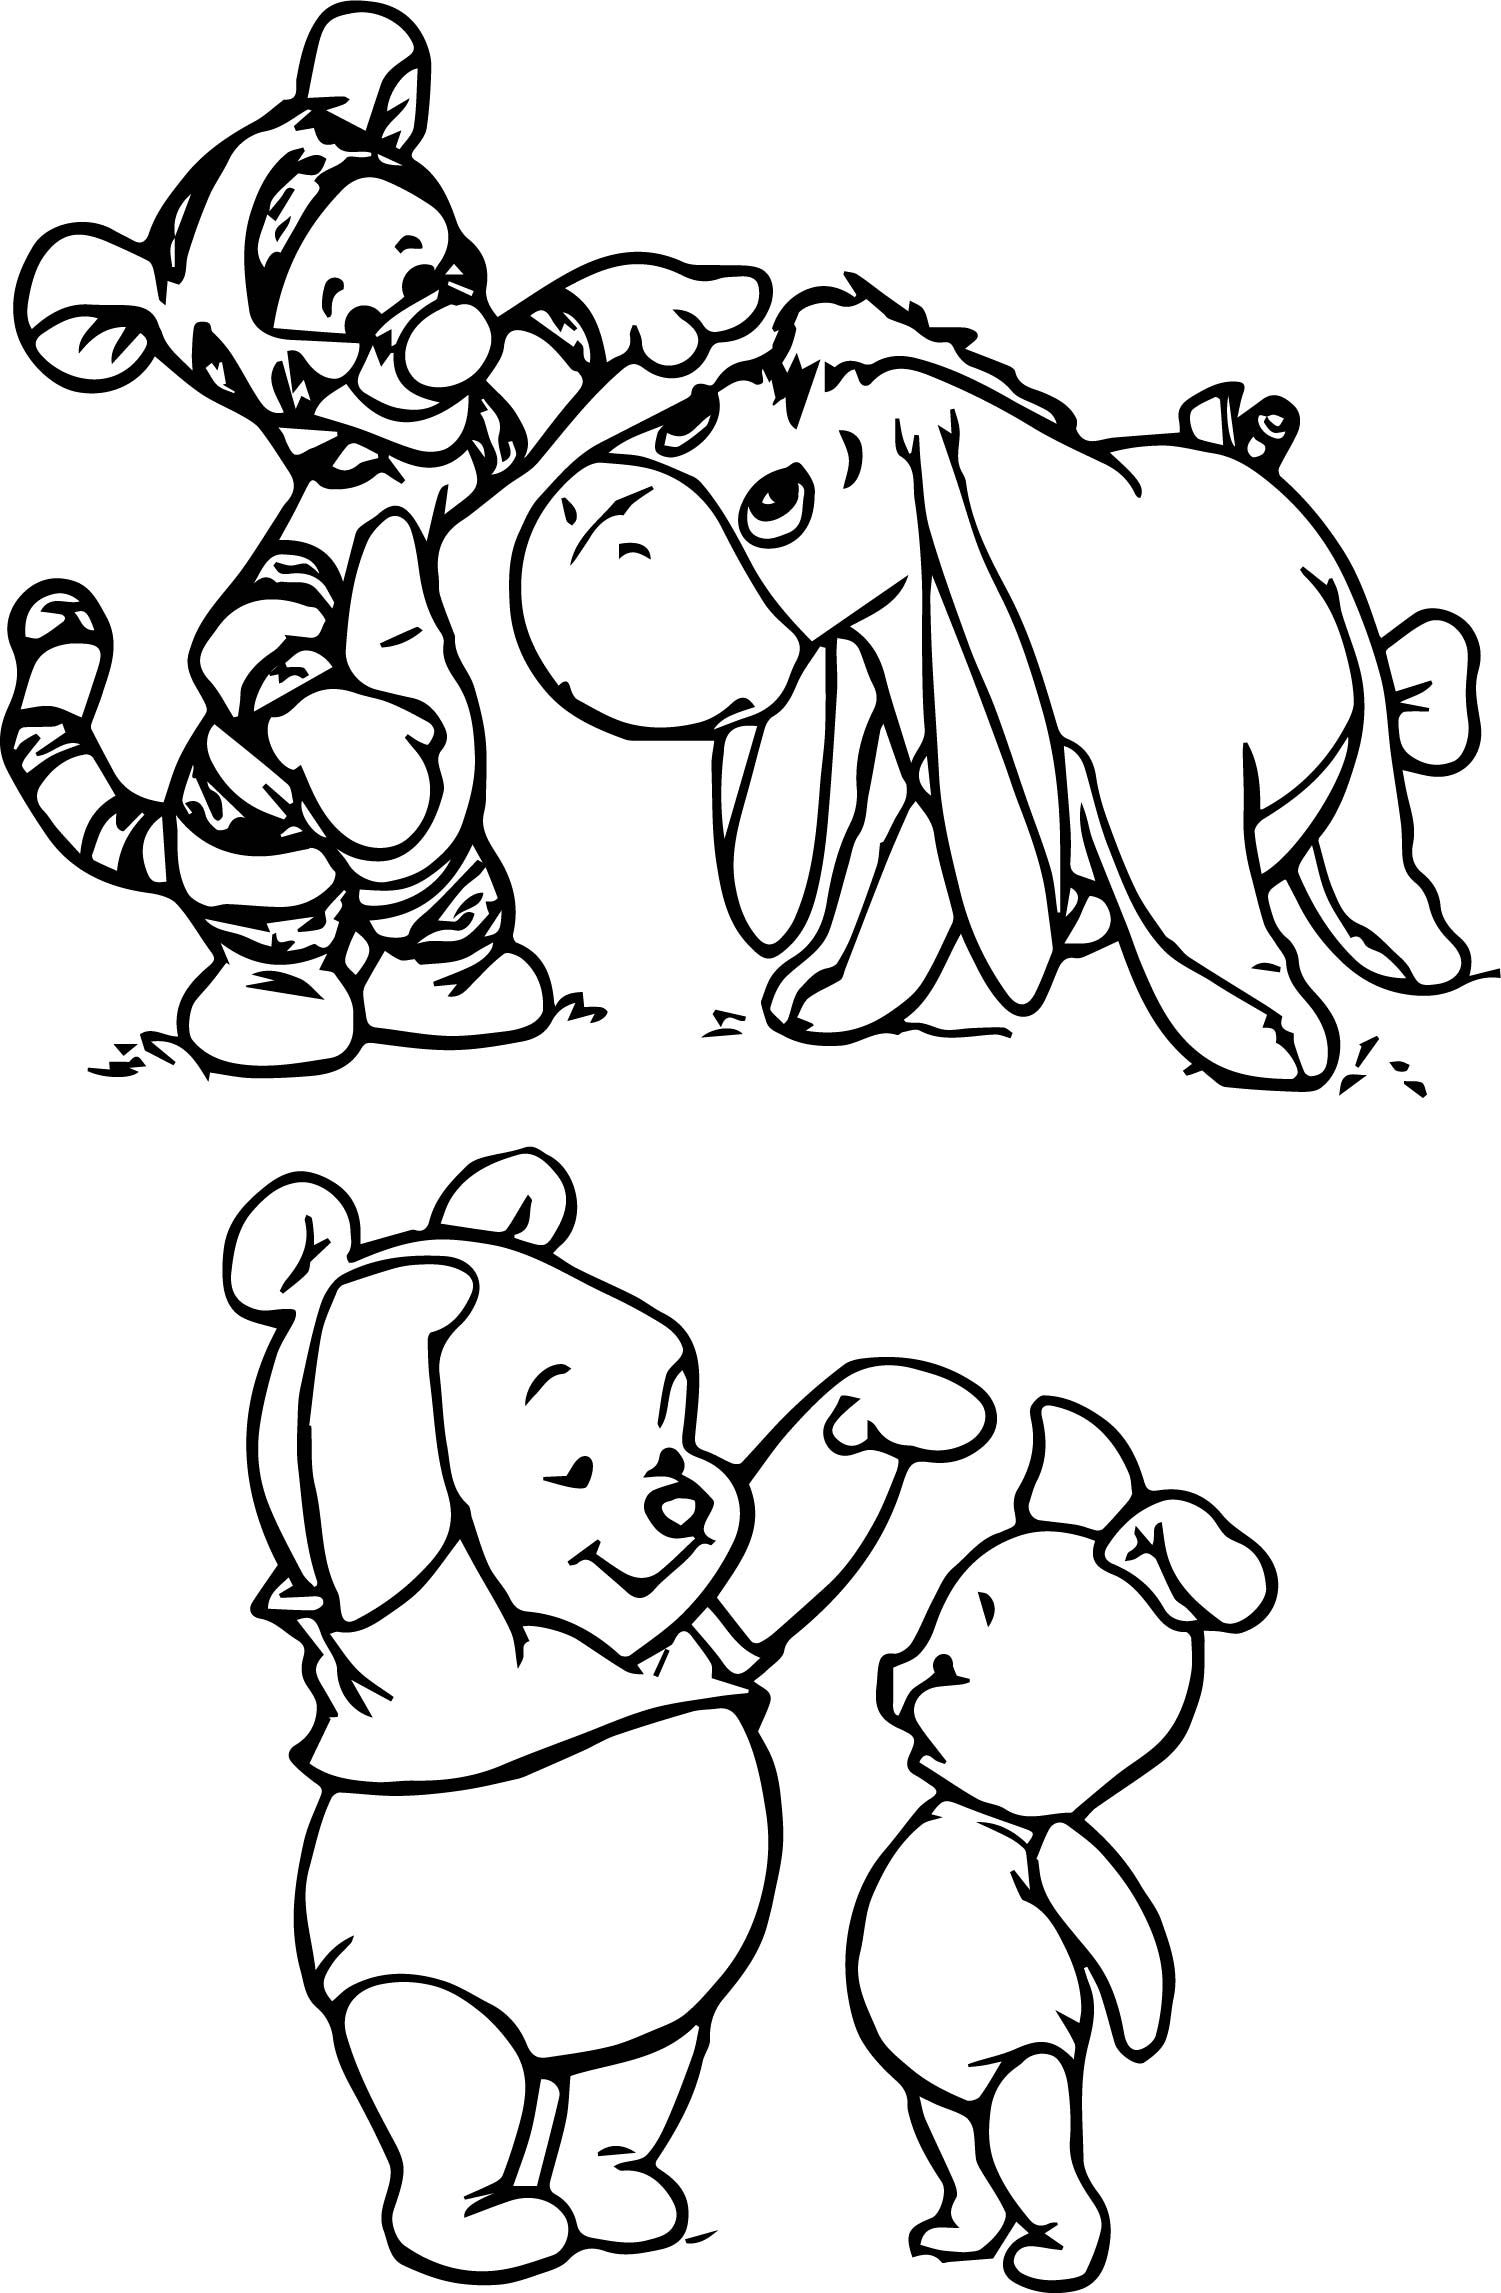 Winnie the Pooh Coloring Pages Cute cartoon drawings